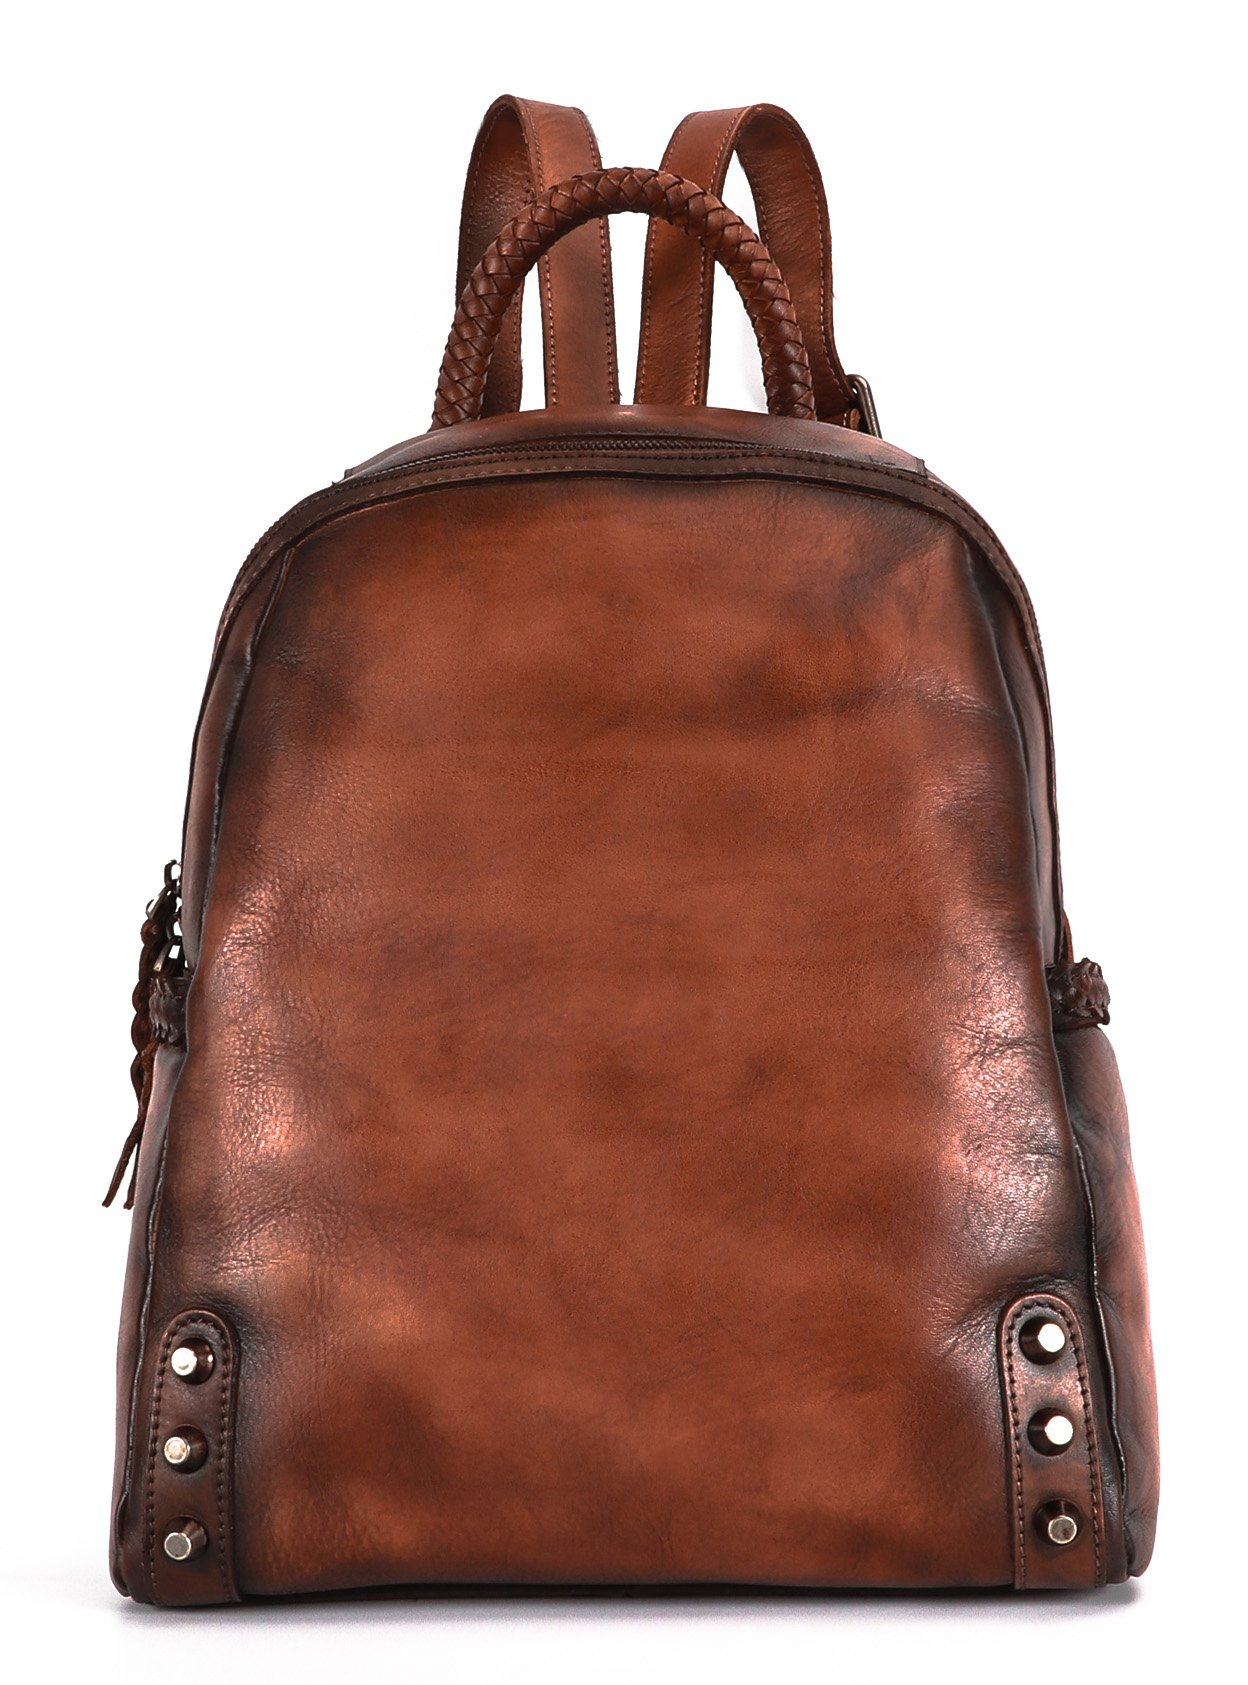 Sophmoda Vintage Style Genuine Cow Leather Backpack Women's Shoulder Bag-A327 (Coffee) by Sophmoda